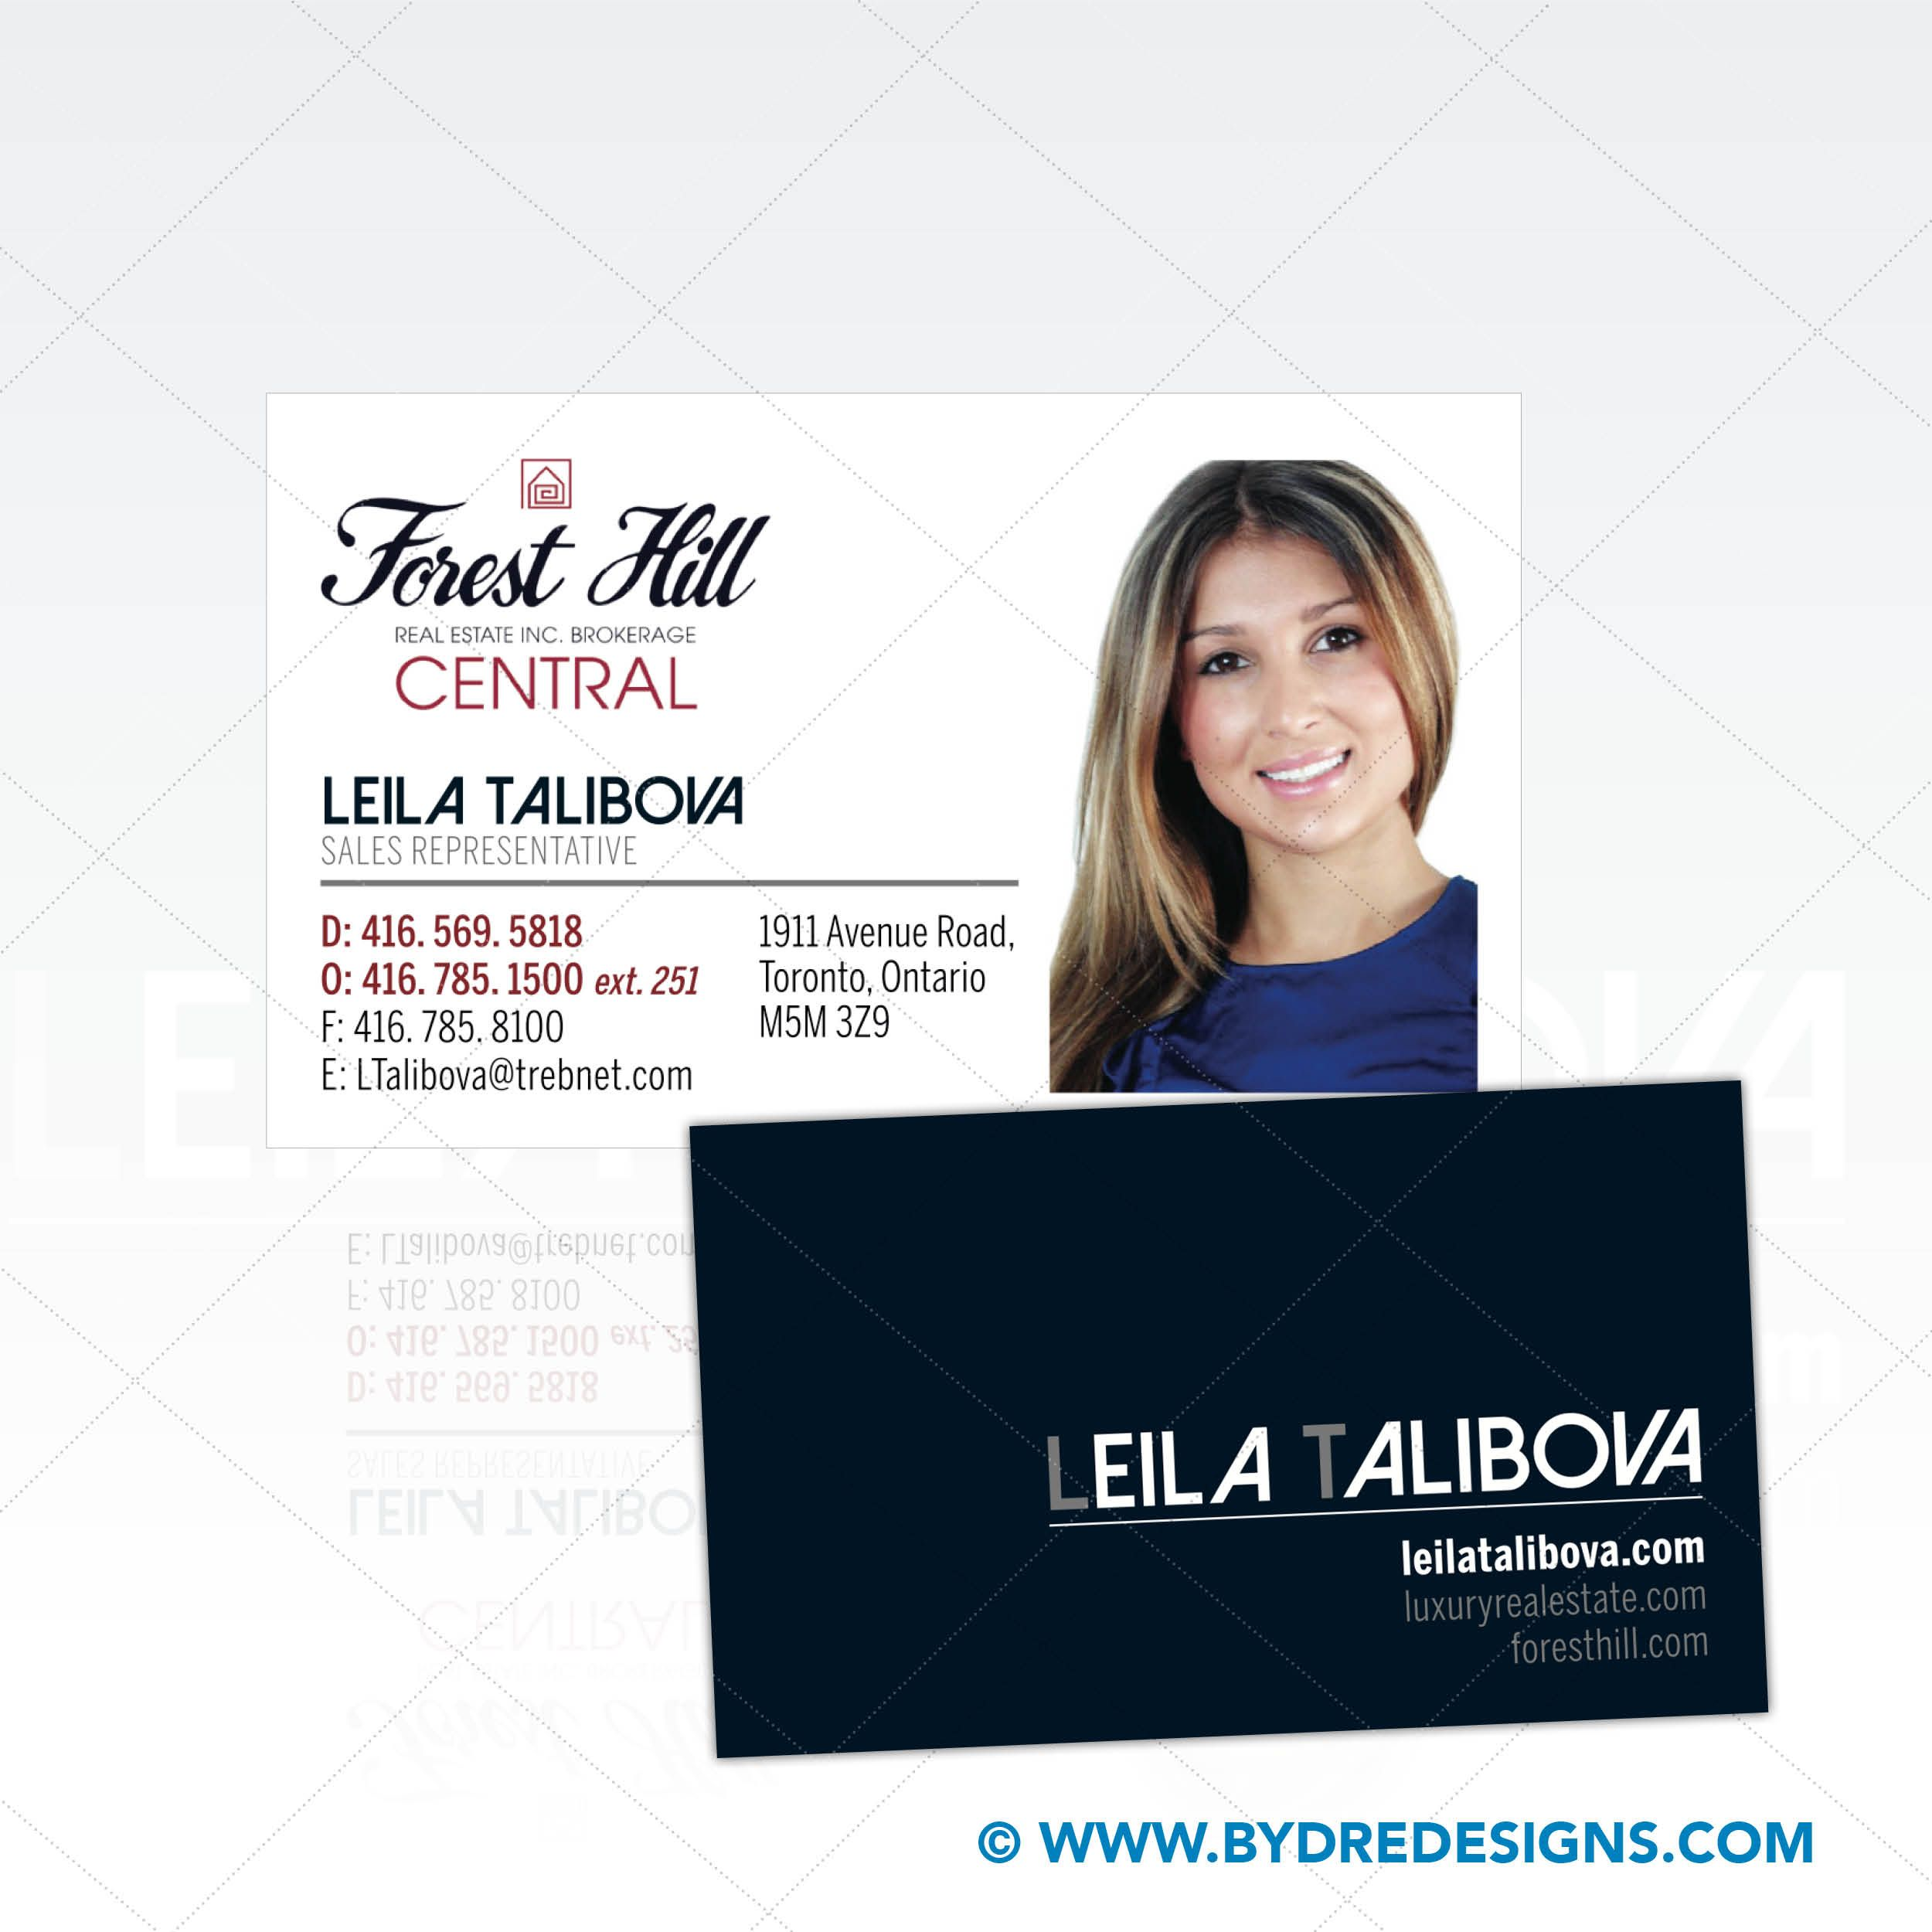 business card design print for leila talibova at forest hill